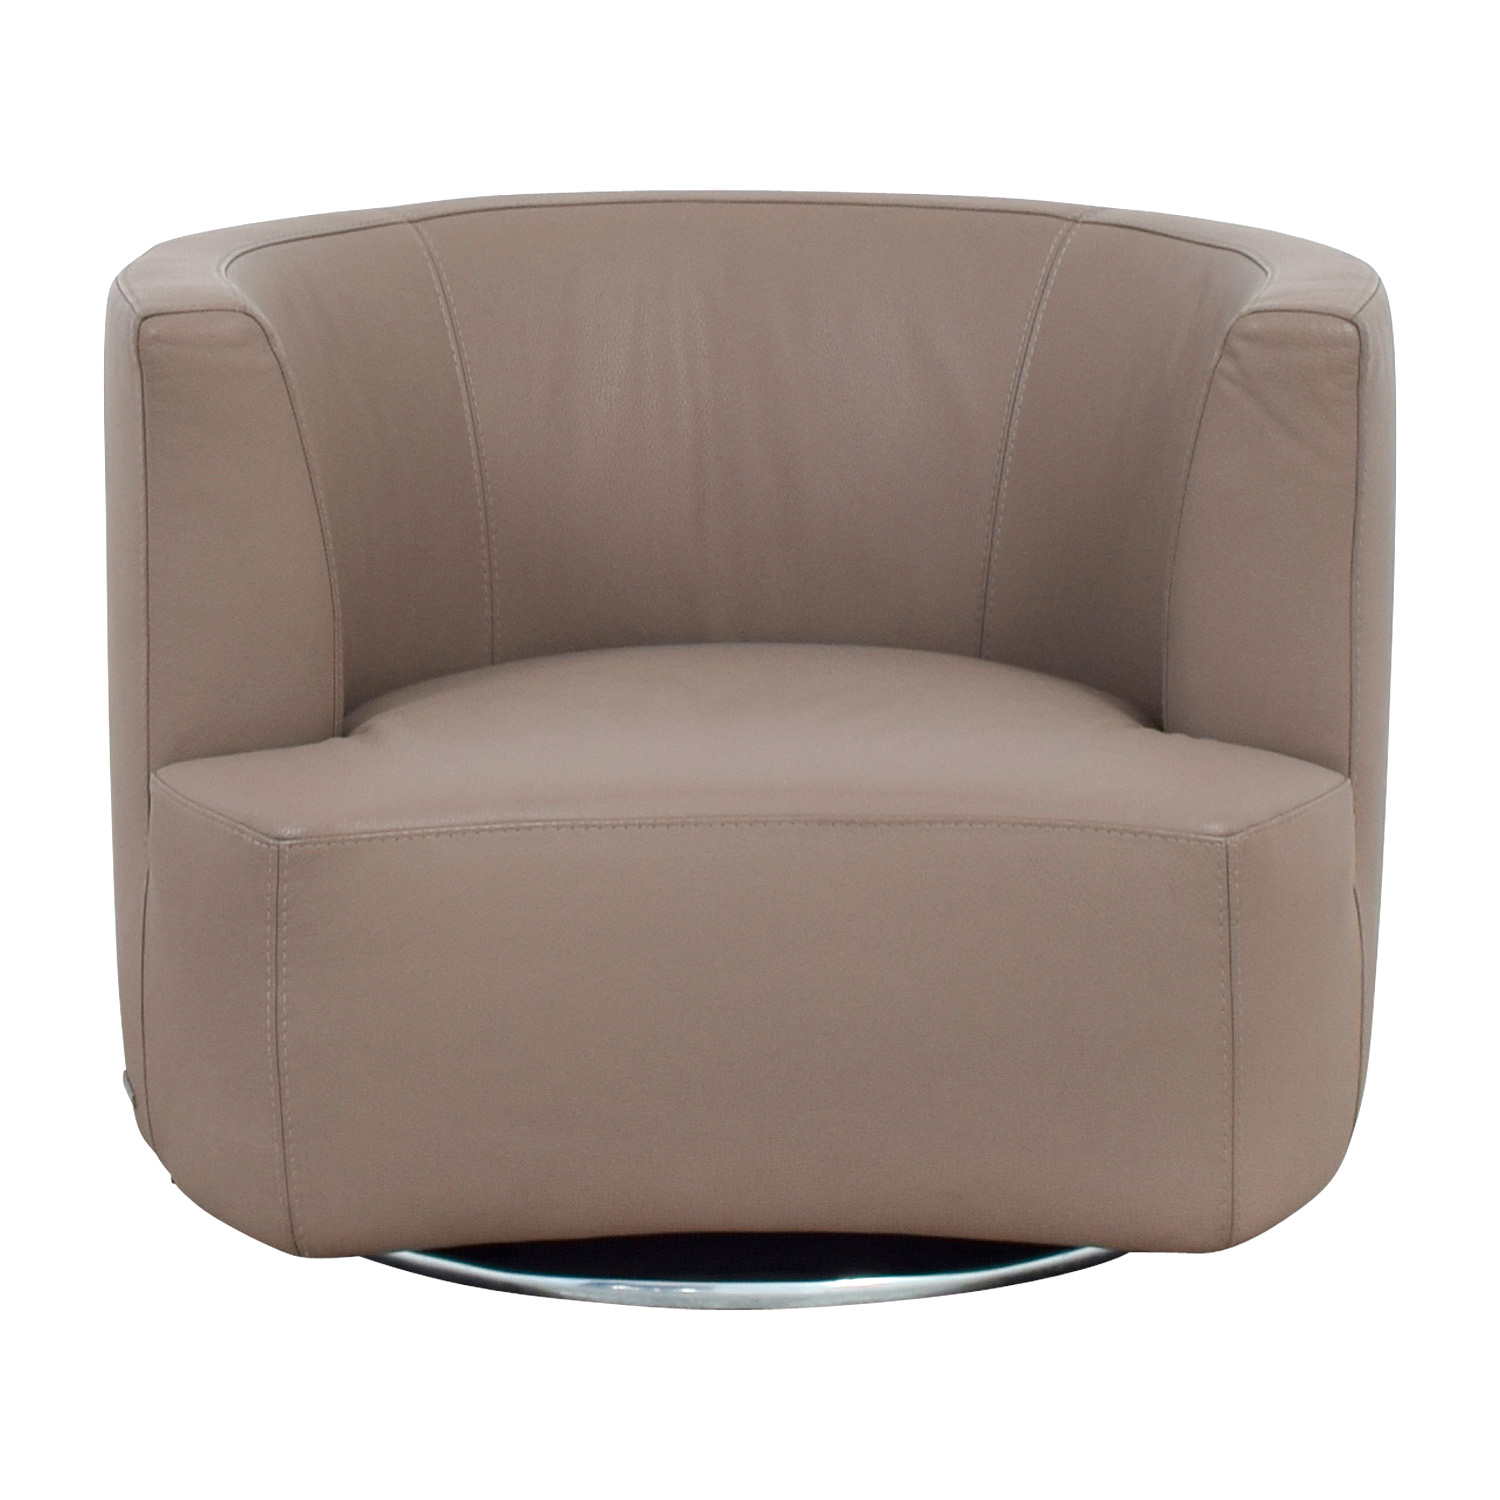 Remarkable 84 Off Roche Bobois Roche Bobois Tan Leather Swivel Chair Chairs Cjindustries Chair Design For Home Cjindustriesco